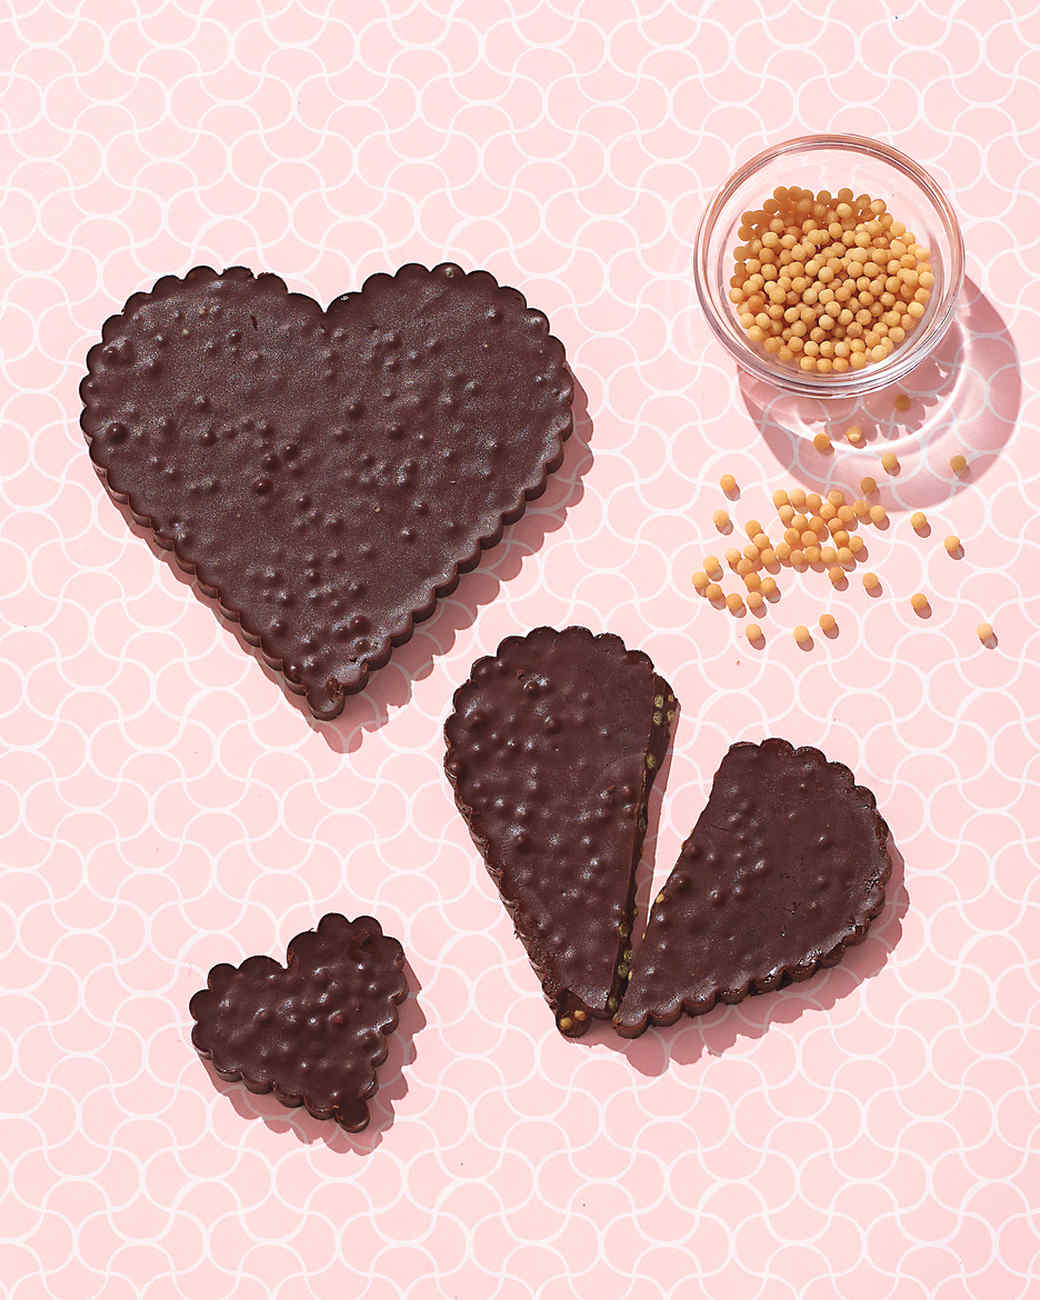 chocolate-couscous-valentines-021-d112539.jpg